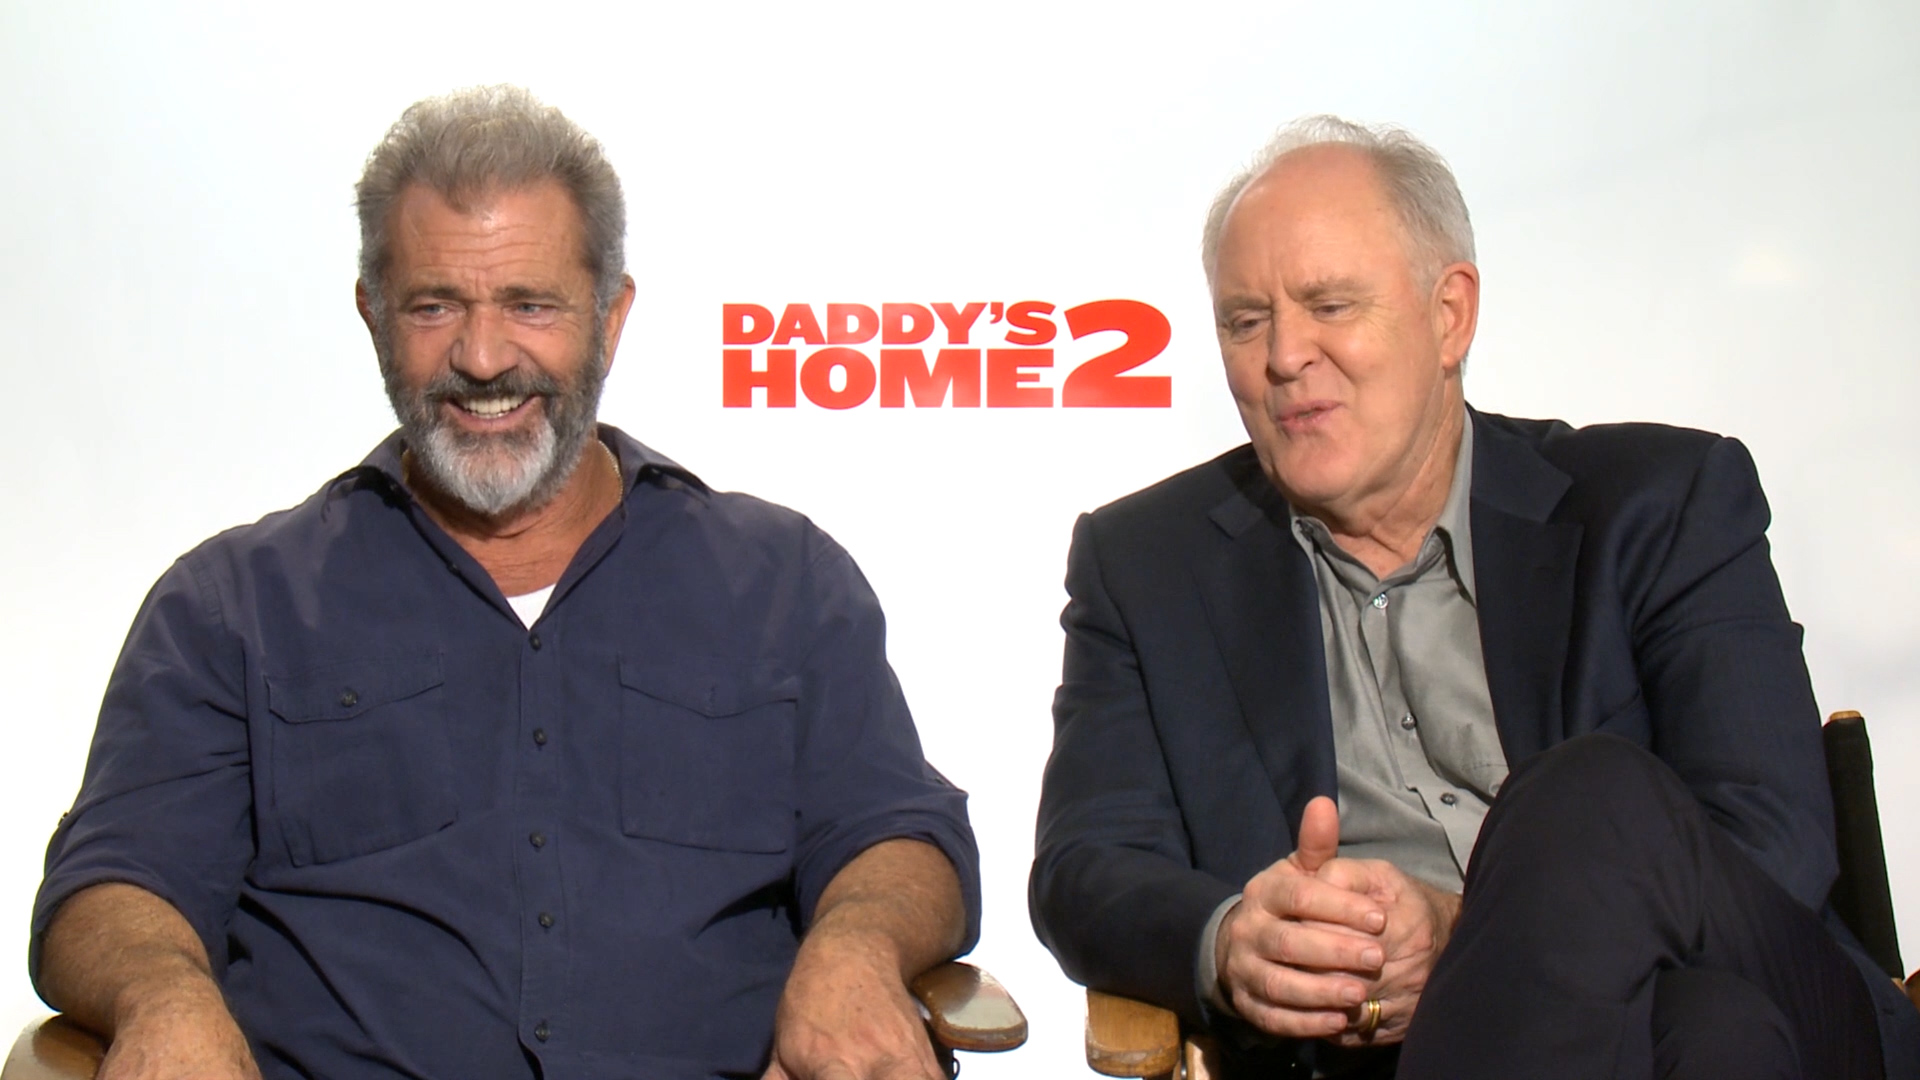 Mel Gibson and John Lithgow talk 'Daddy's Home 2'